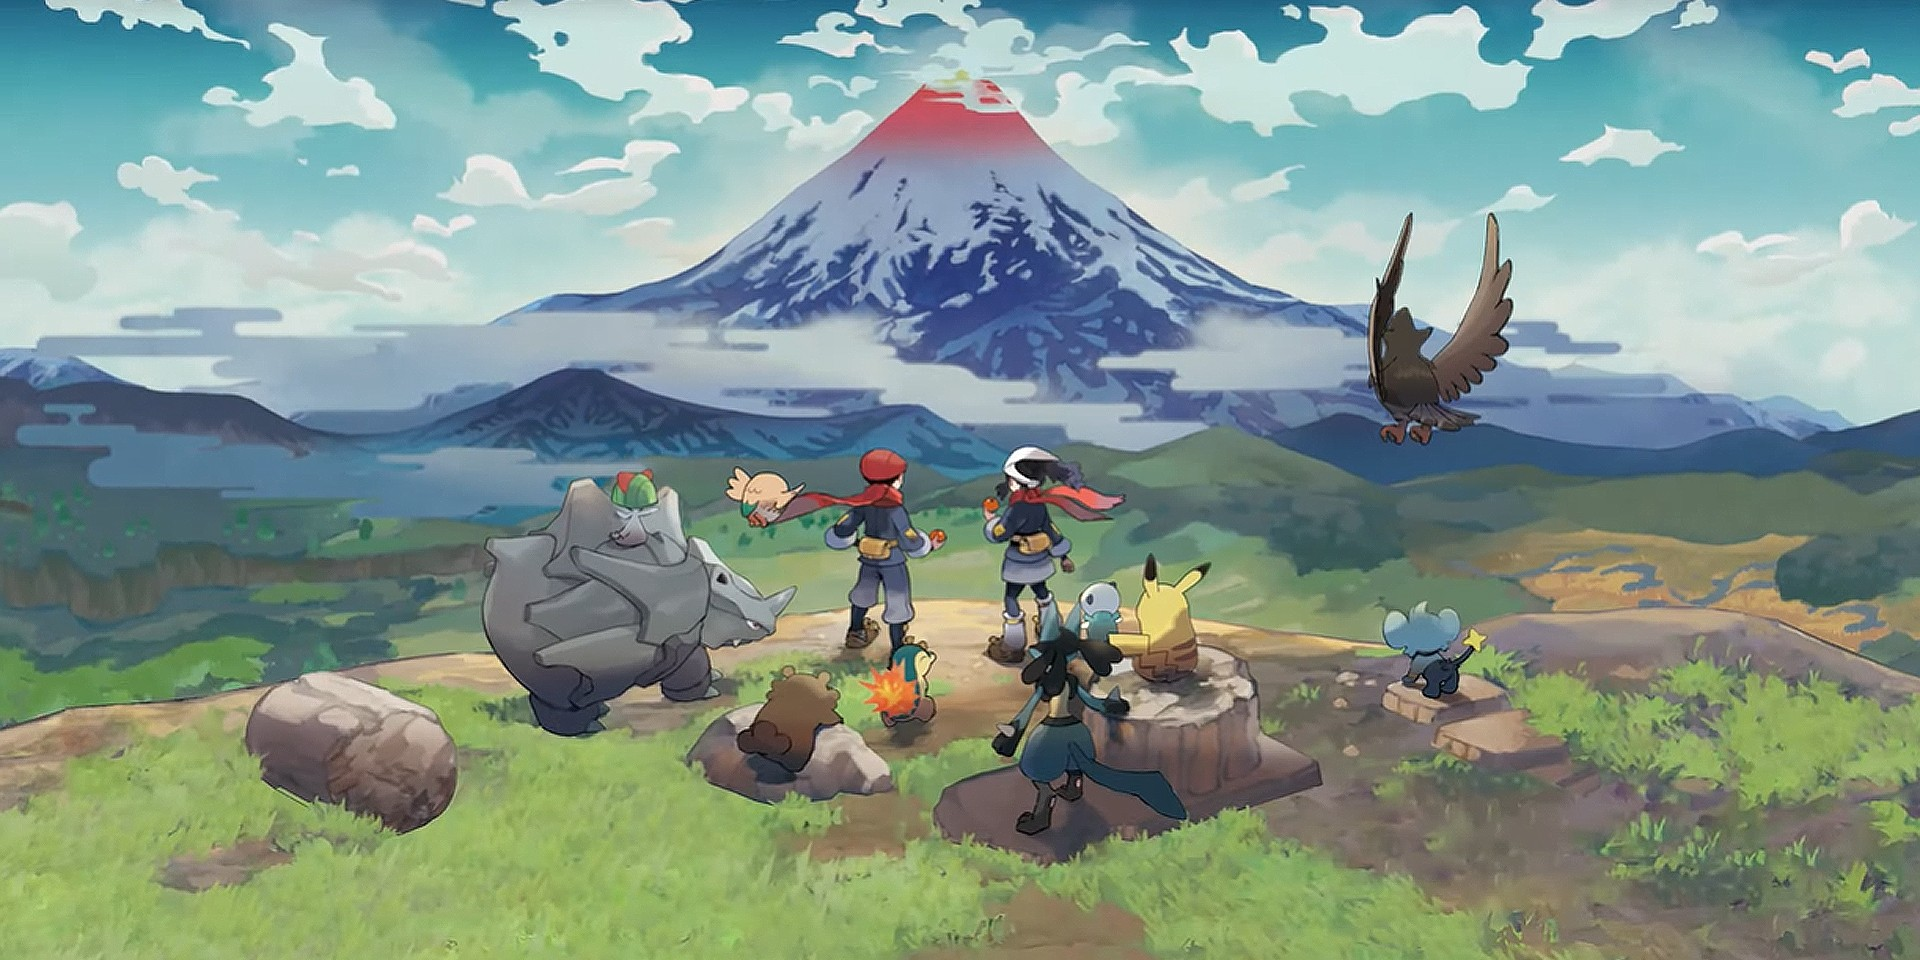 Pokémon Legends: Arceus introduces new open-world experience, revamped catching and battle system